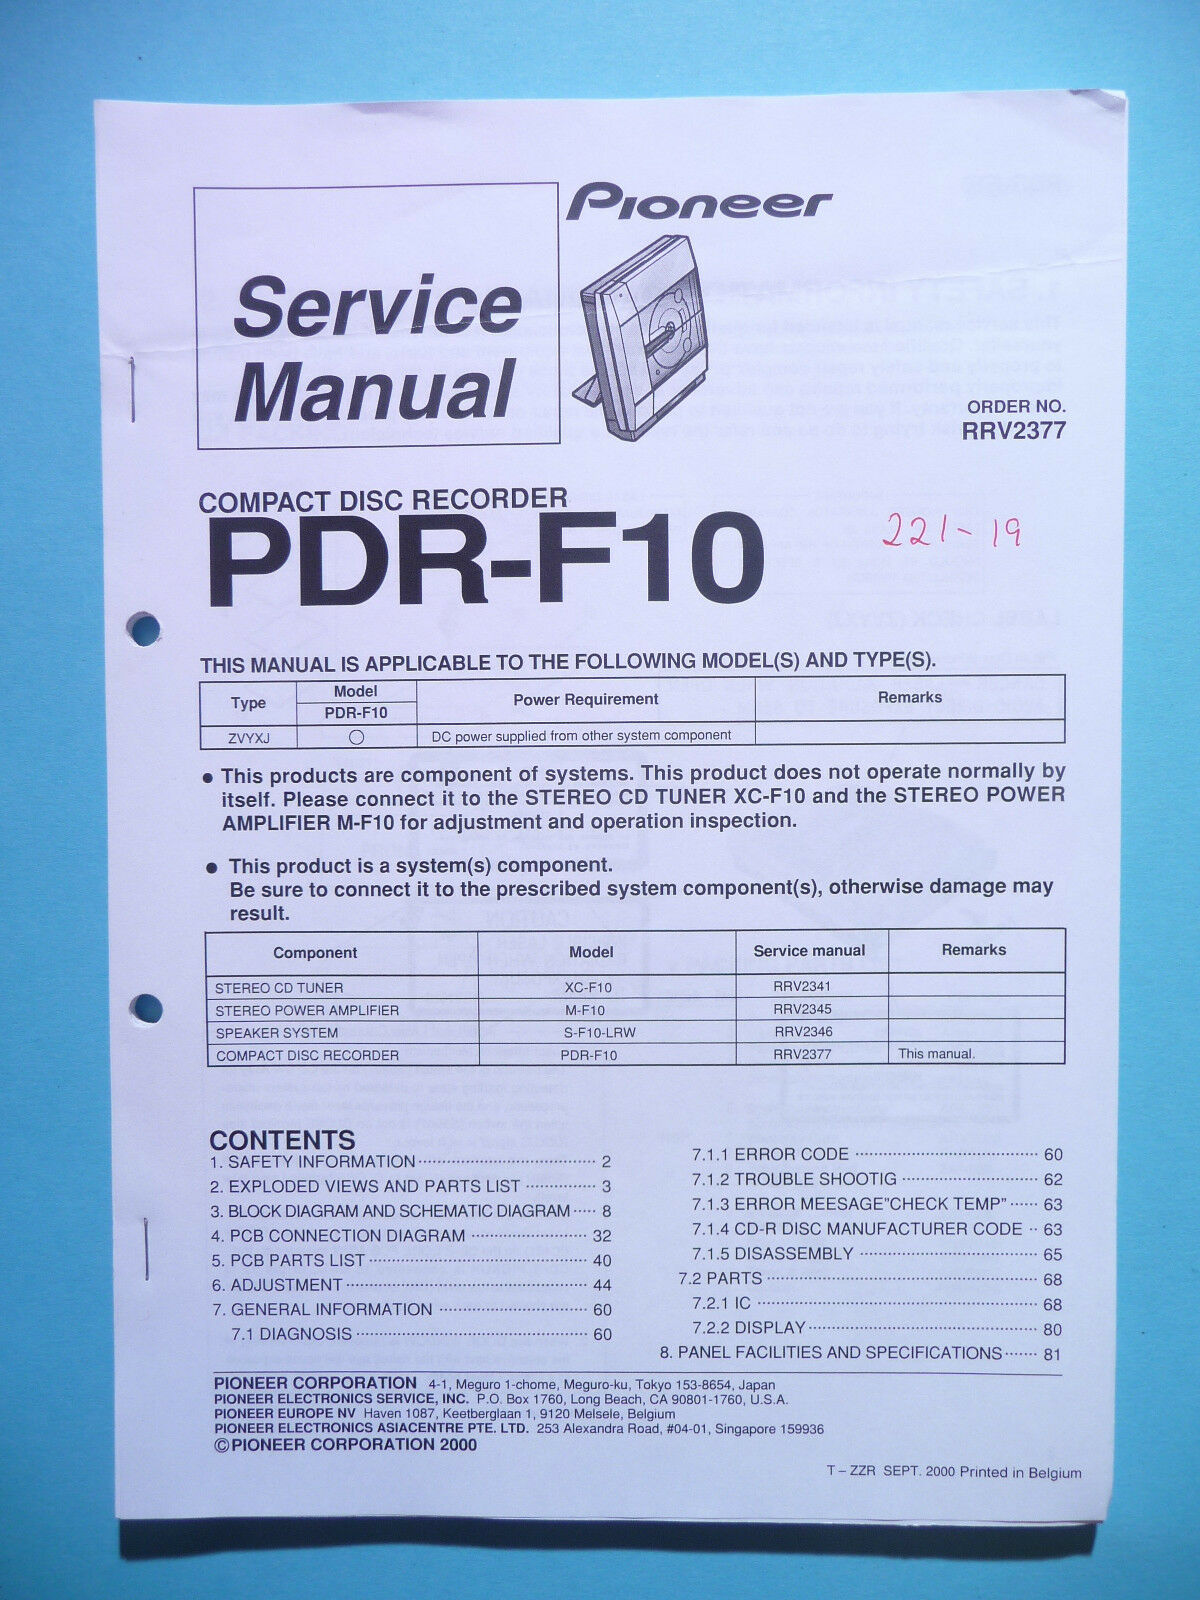 Service Manual For Pioneer Pdr F10original 1797 Picclick Eq 6500 Wiring Diagram 1 Of 1only Available